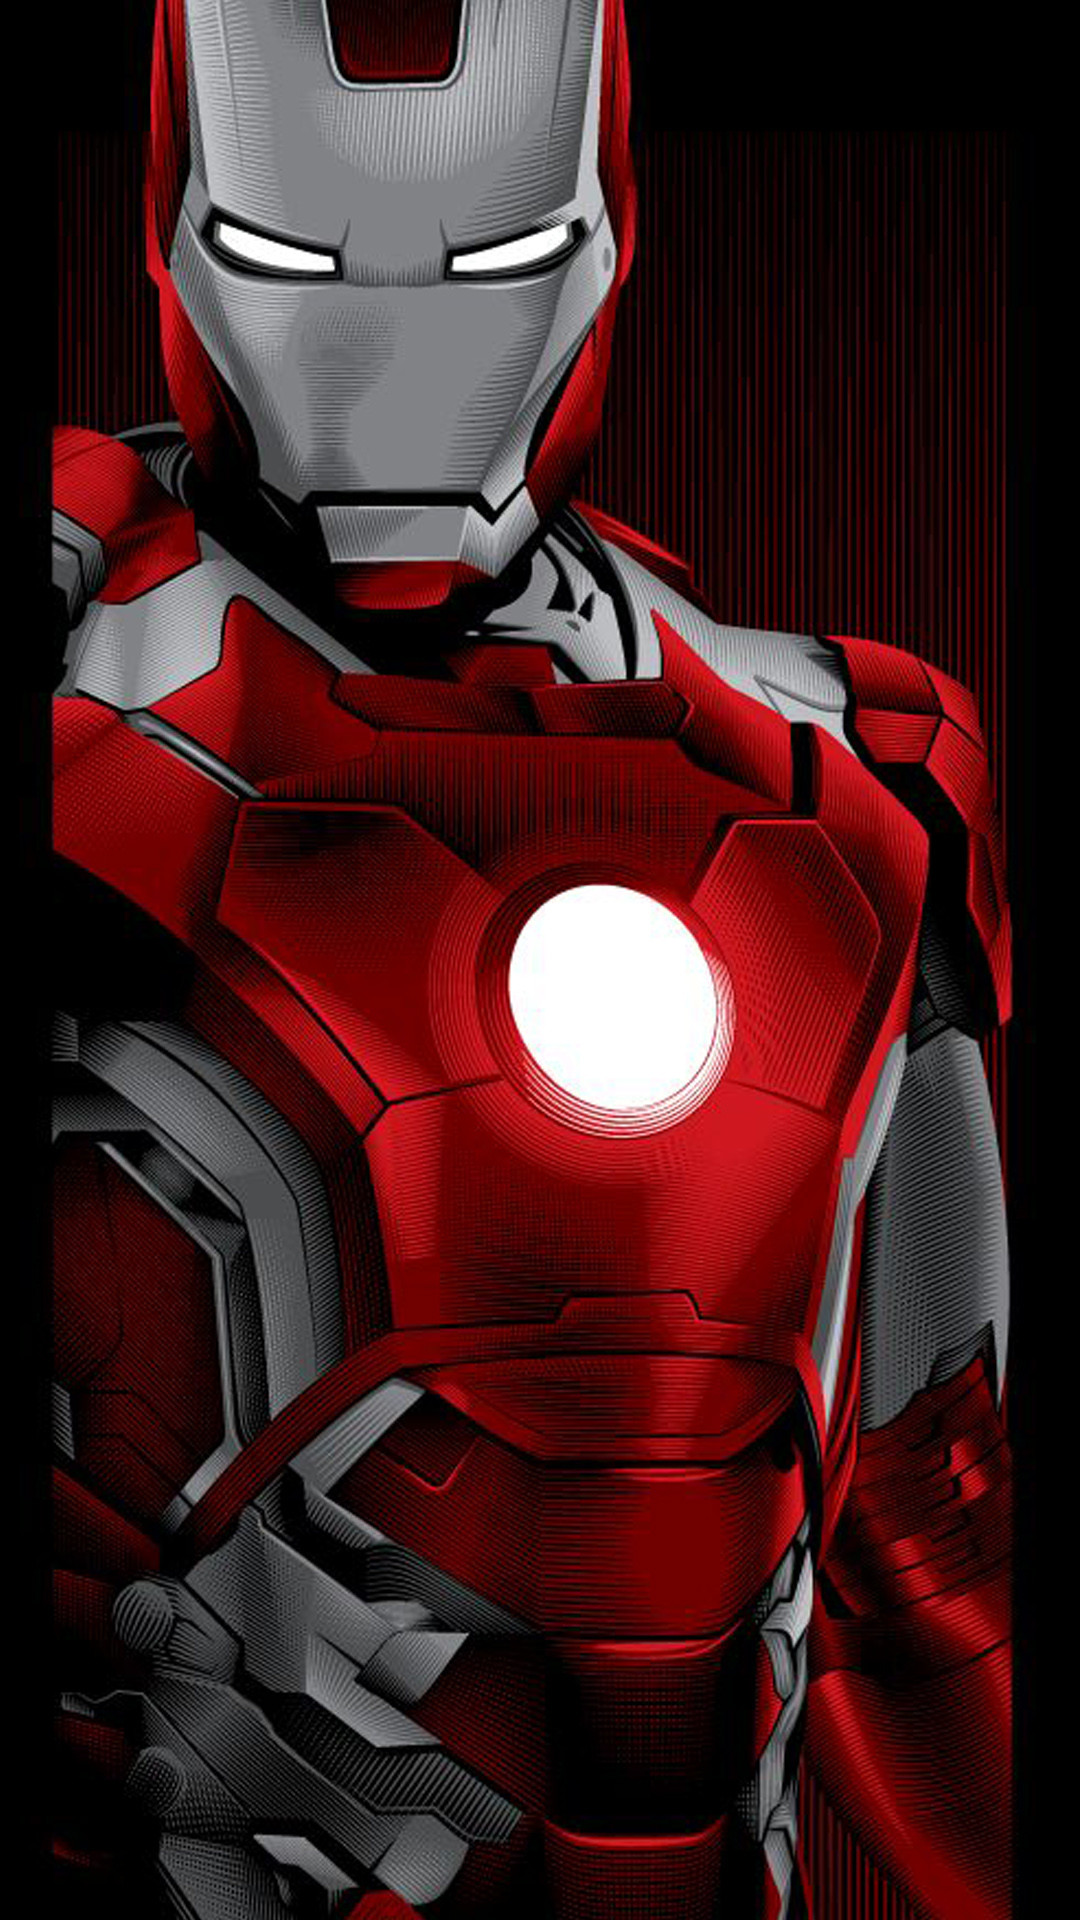 Arc Reactor Wallpaper HD 75 images 1080x1920